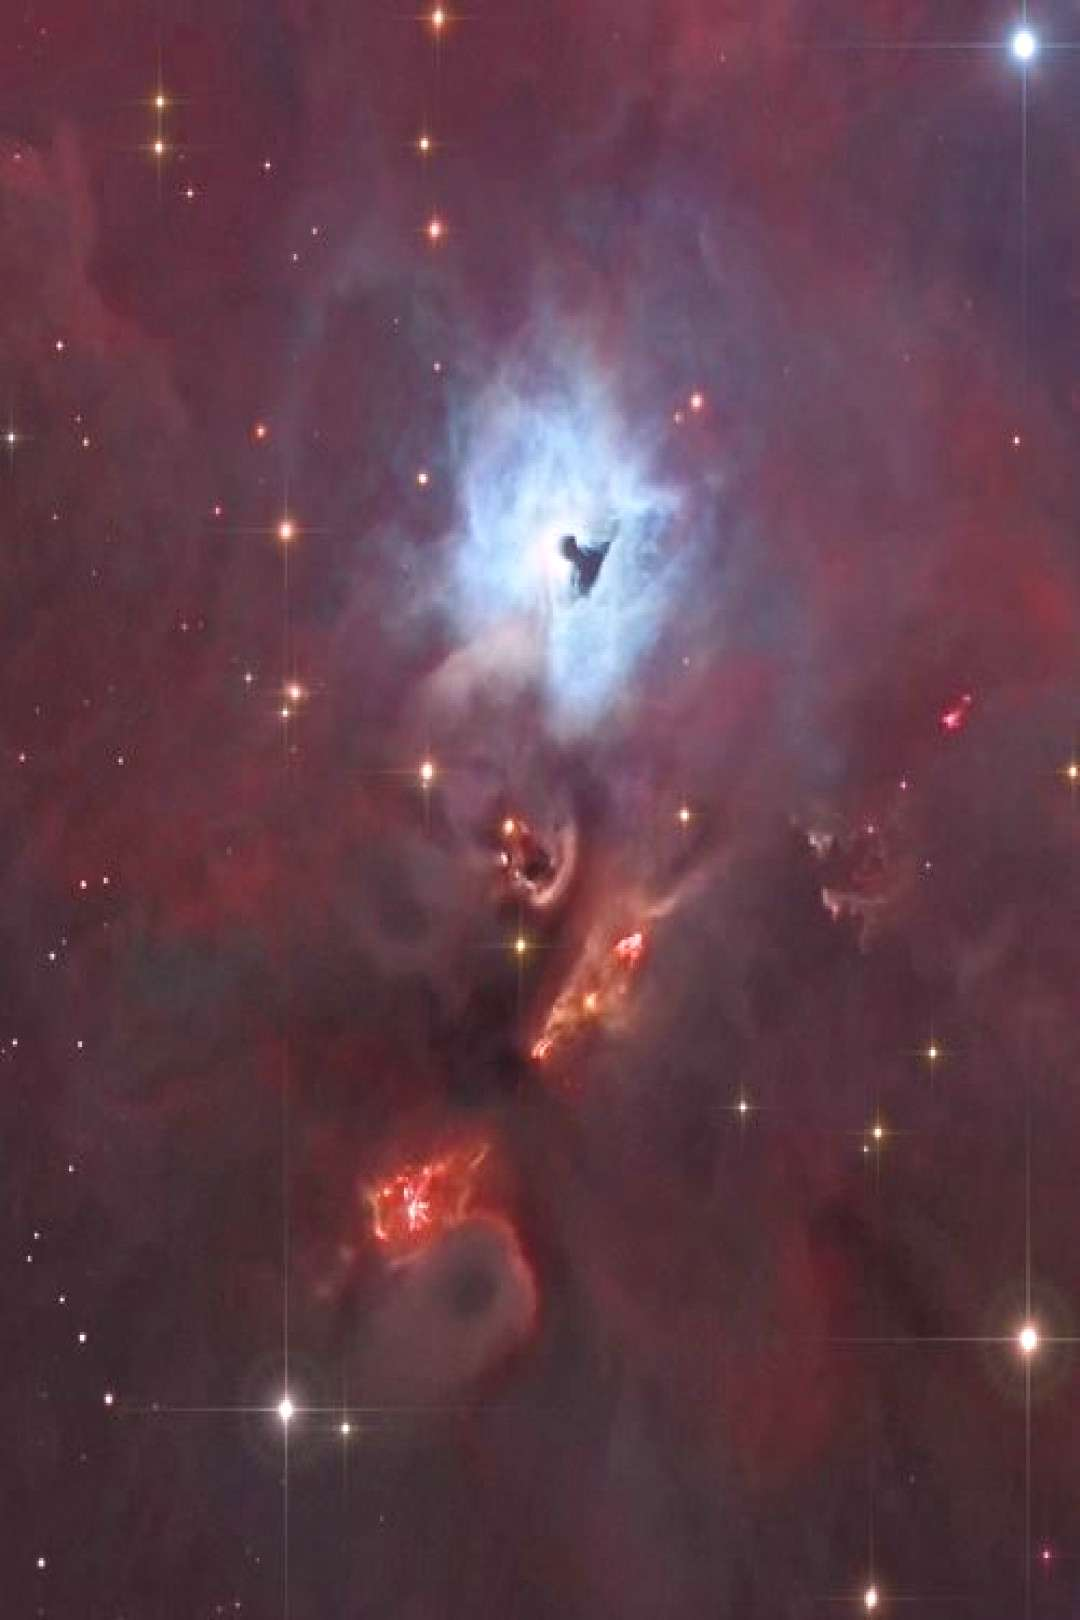 Weather    orion nebula hubble space telescope constellations, orion nebula god galaxies, orion